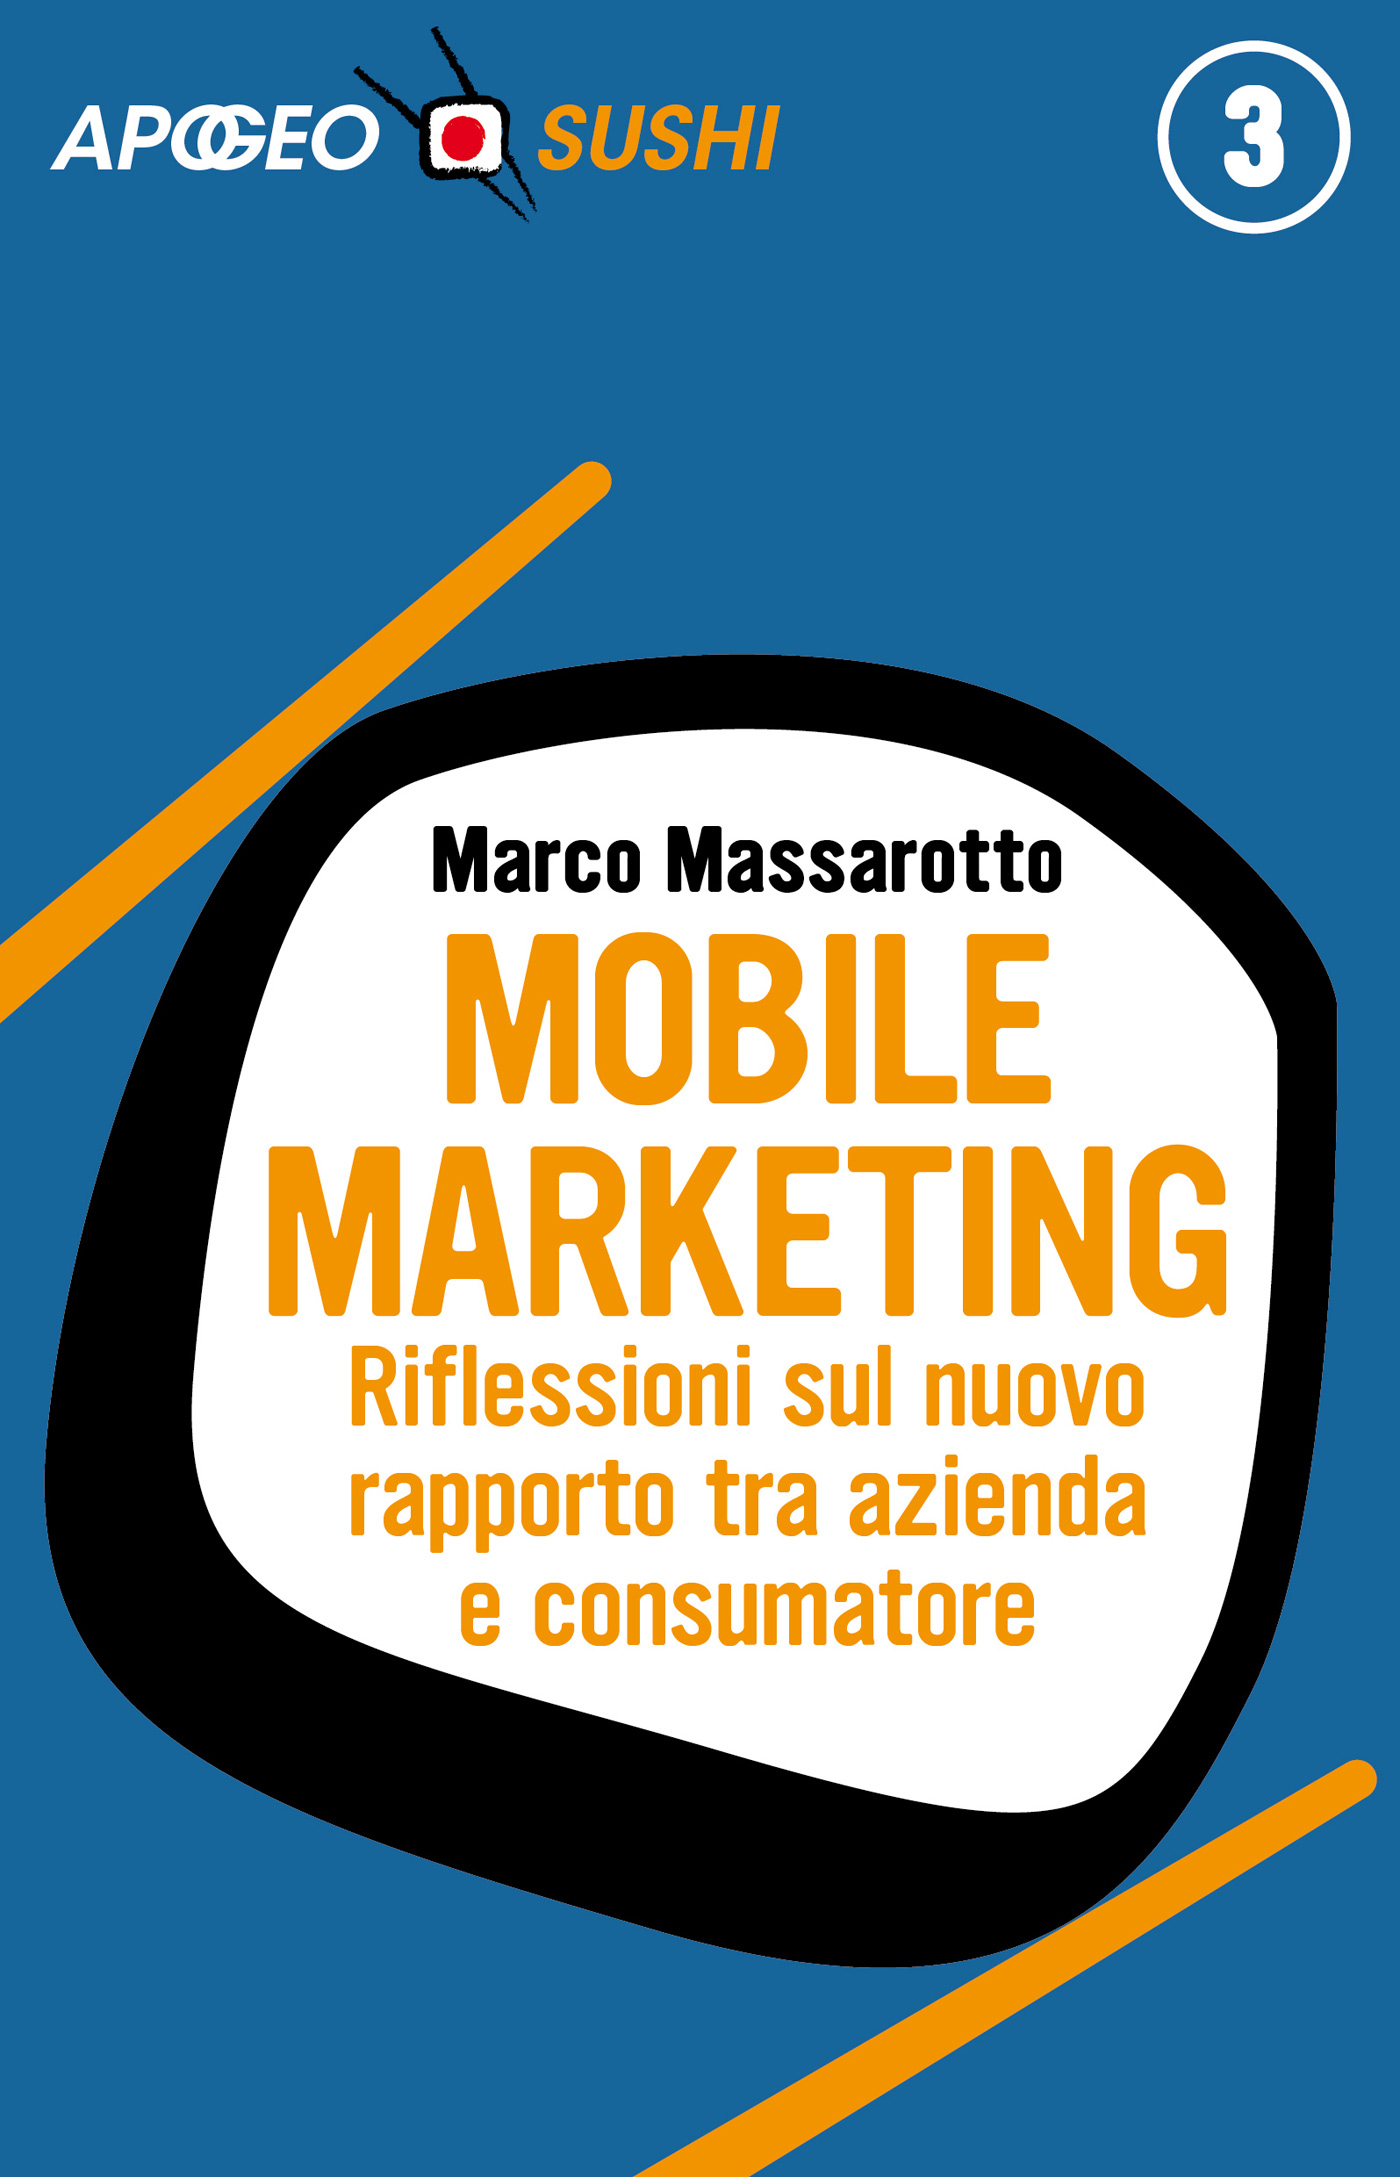 Mobile marketing – Marco Massarotto